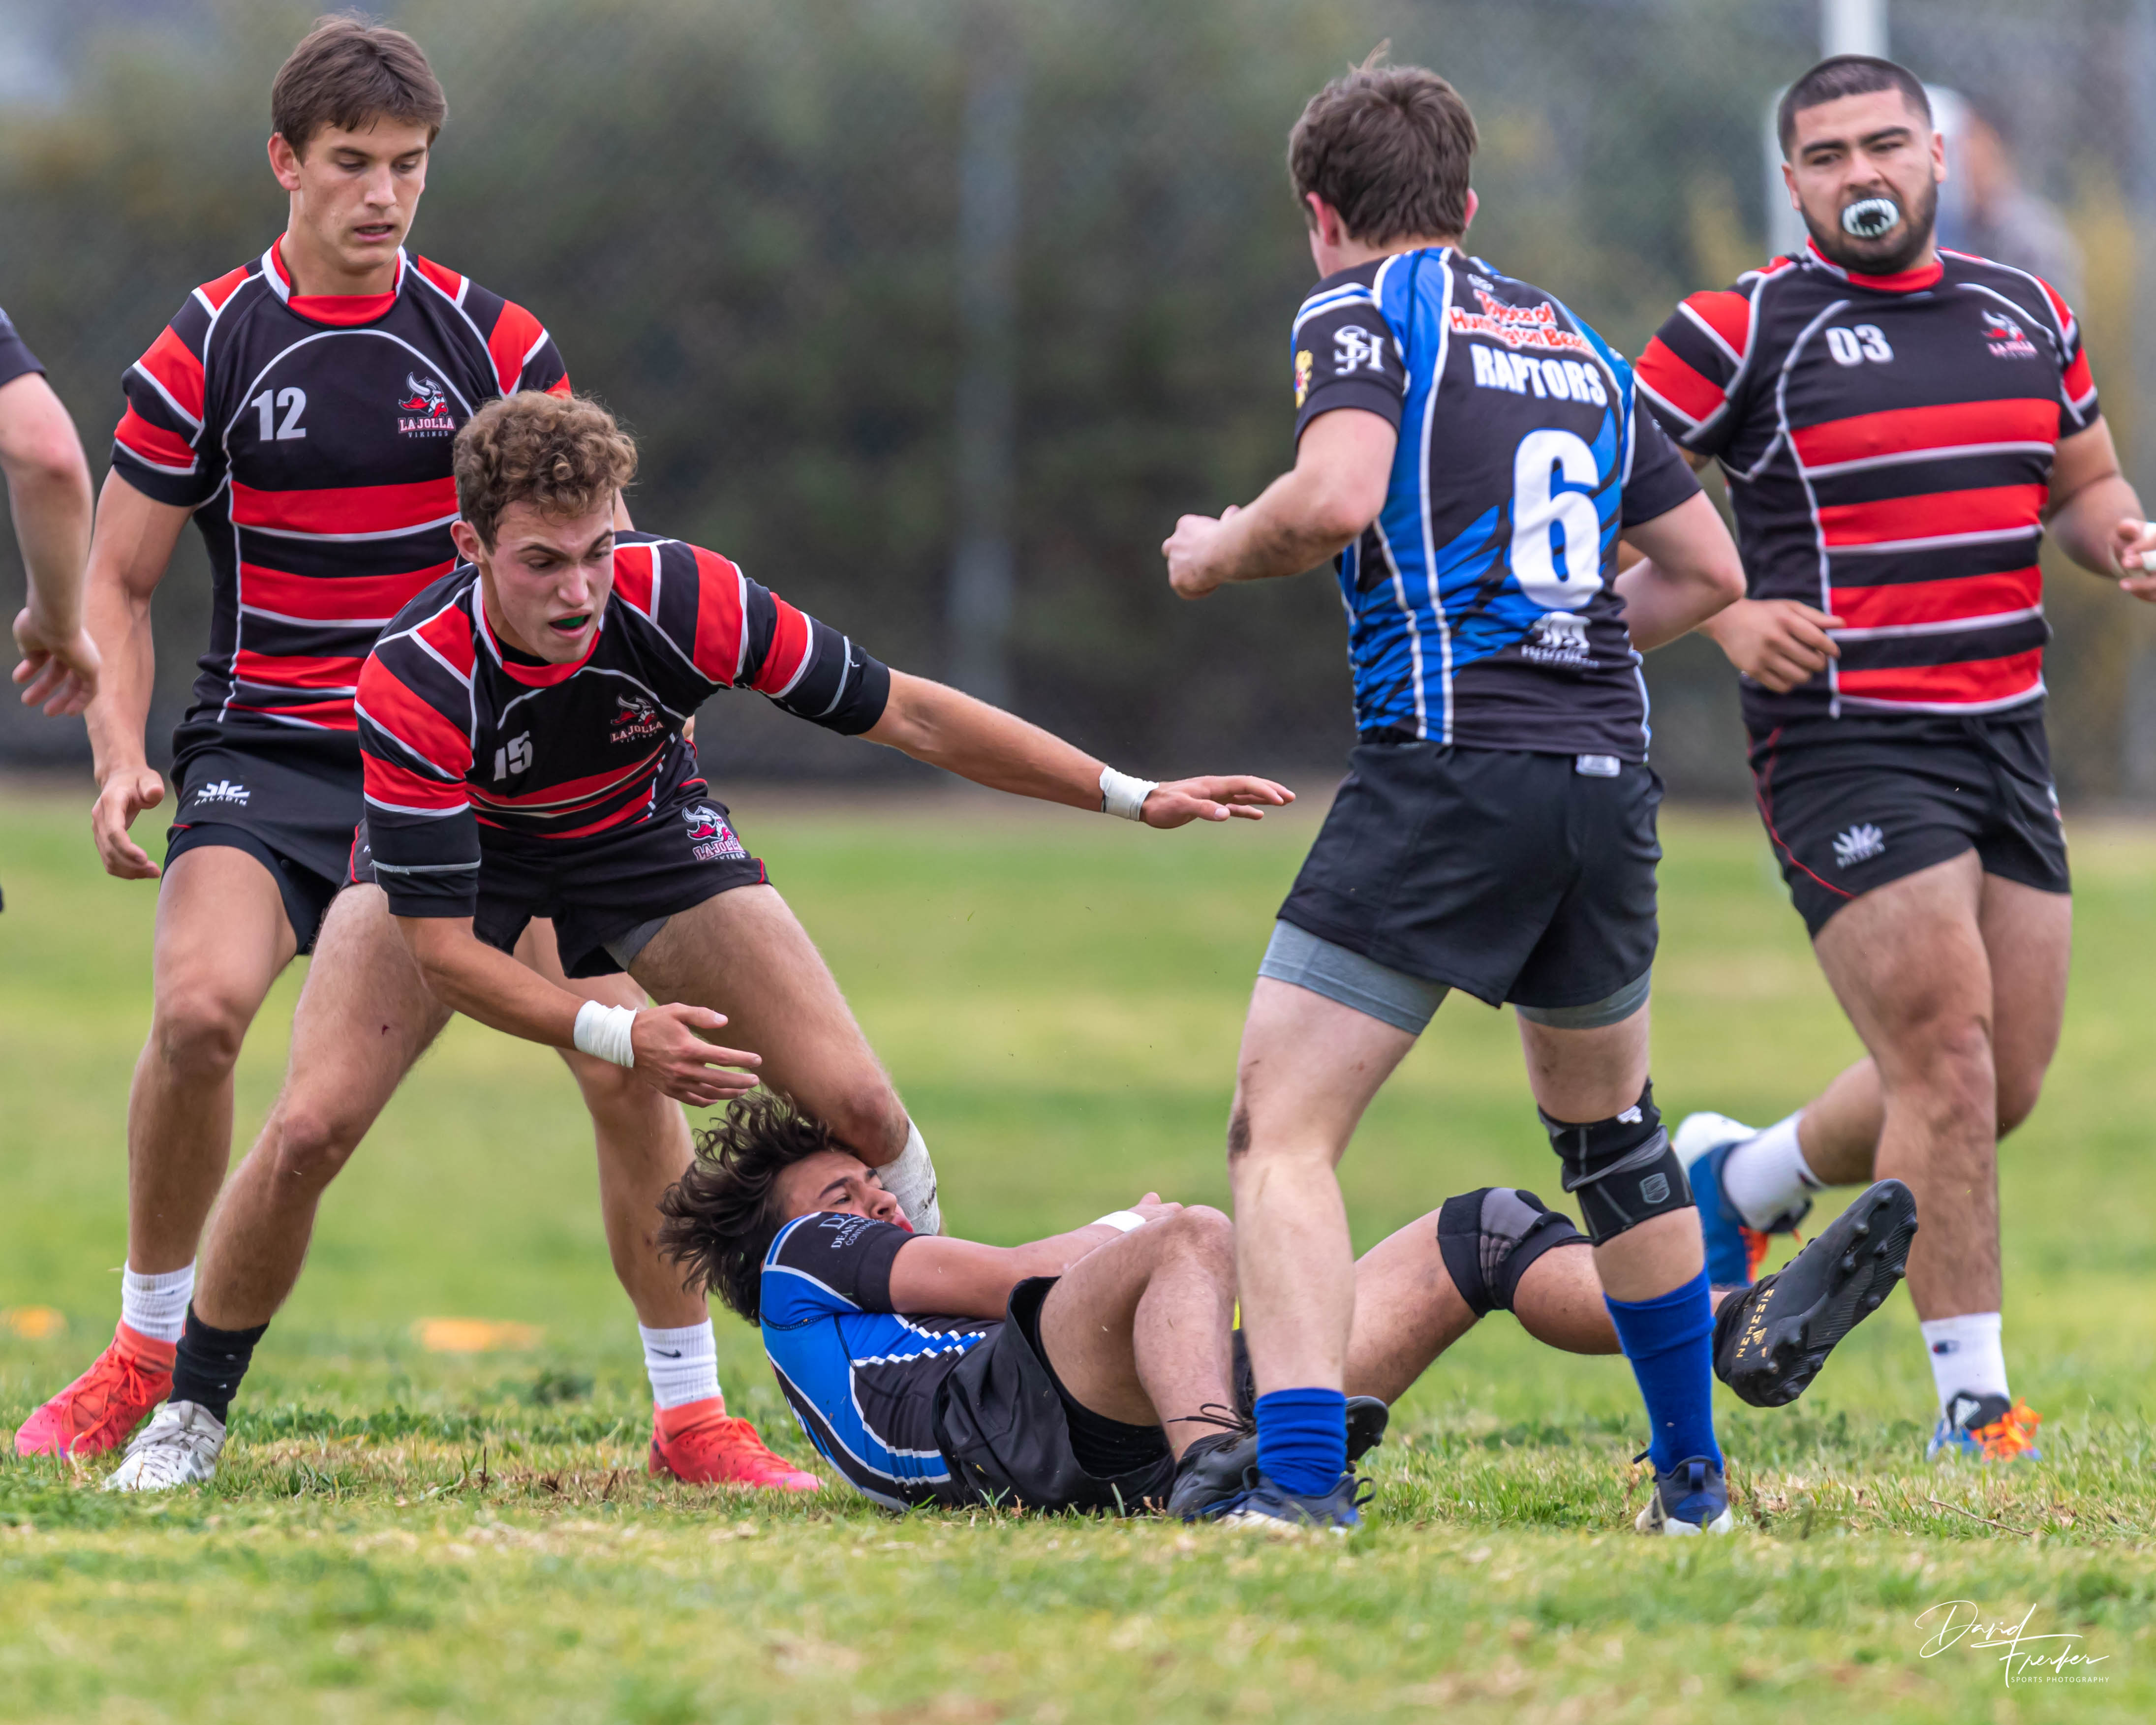 LaJollaRugby43